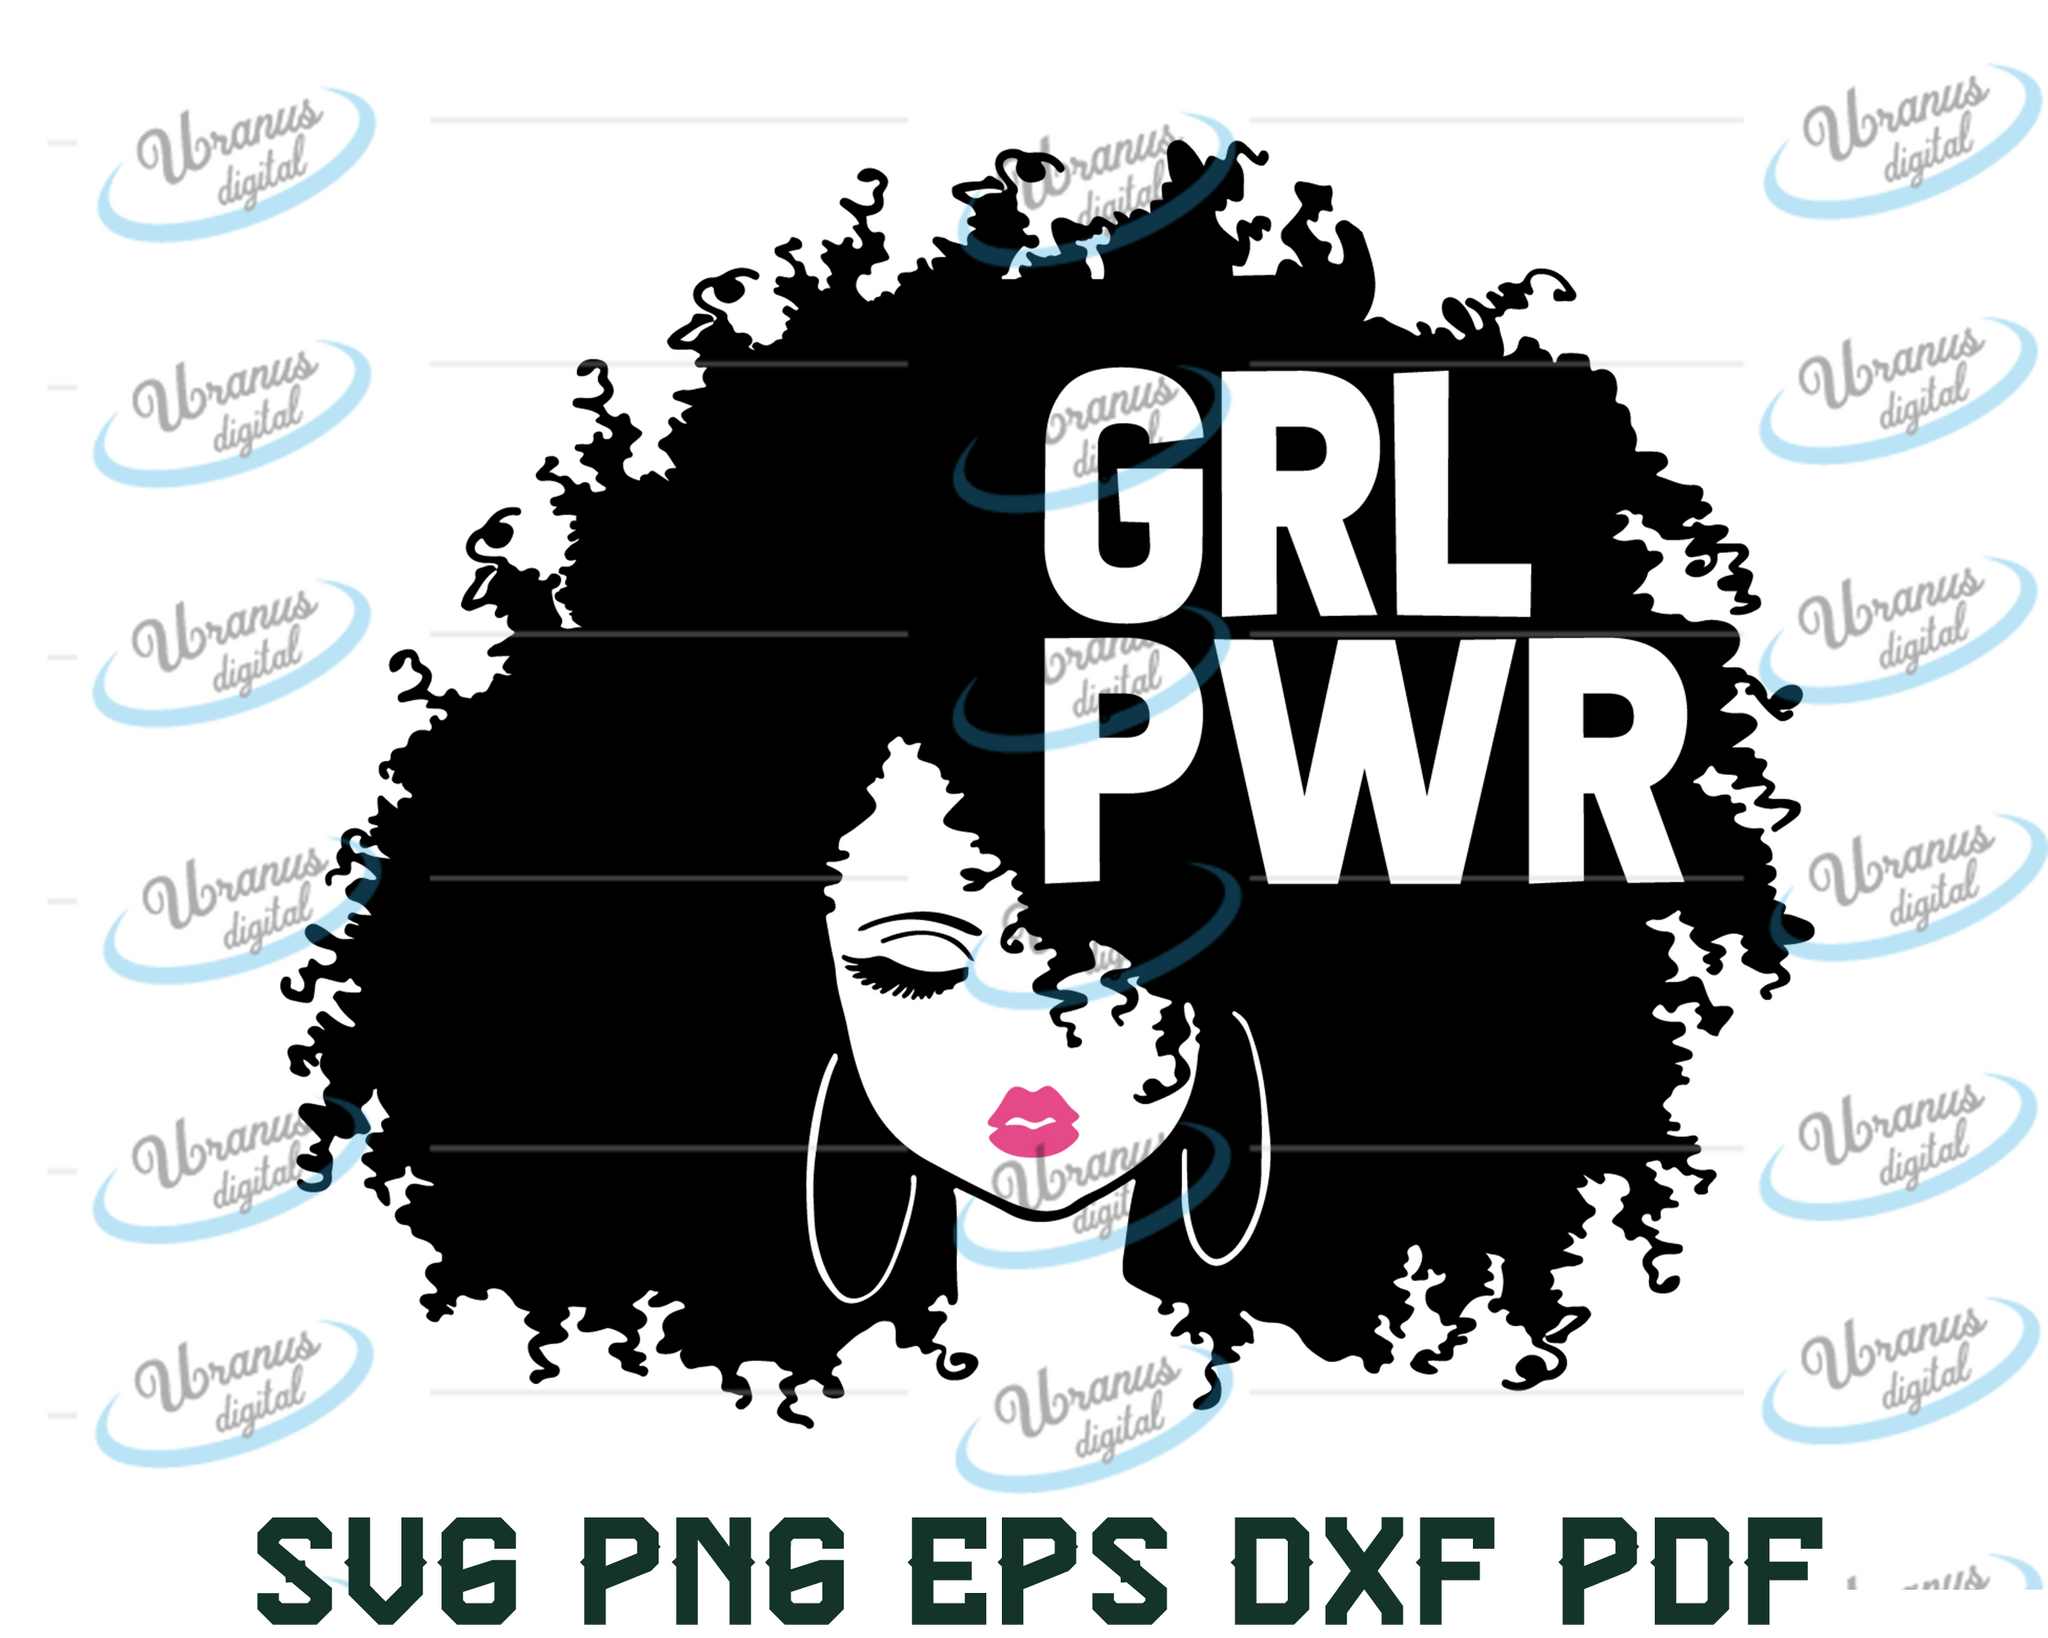 Black queen svg – Crown svg – Black woman svg – Woman clipart – Black girl svg – Afro hair svg – Afro svg – eps, png, dxf pdf svg for cricut